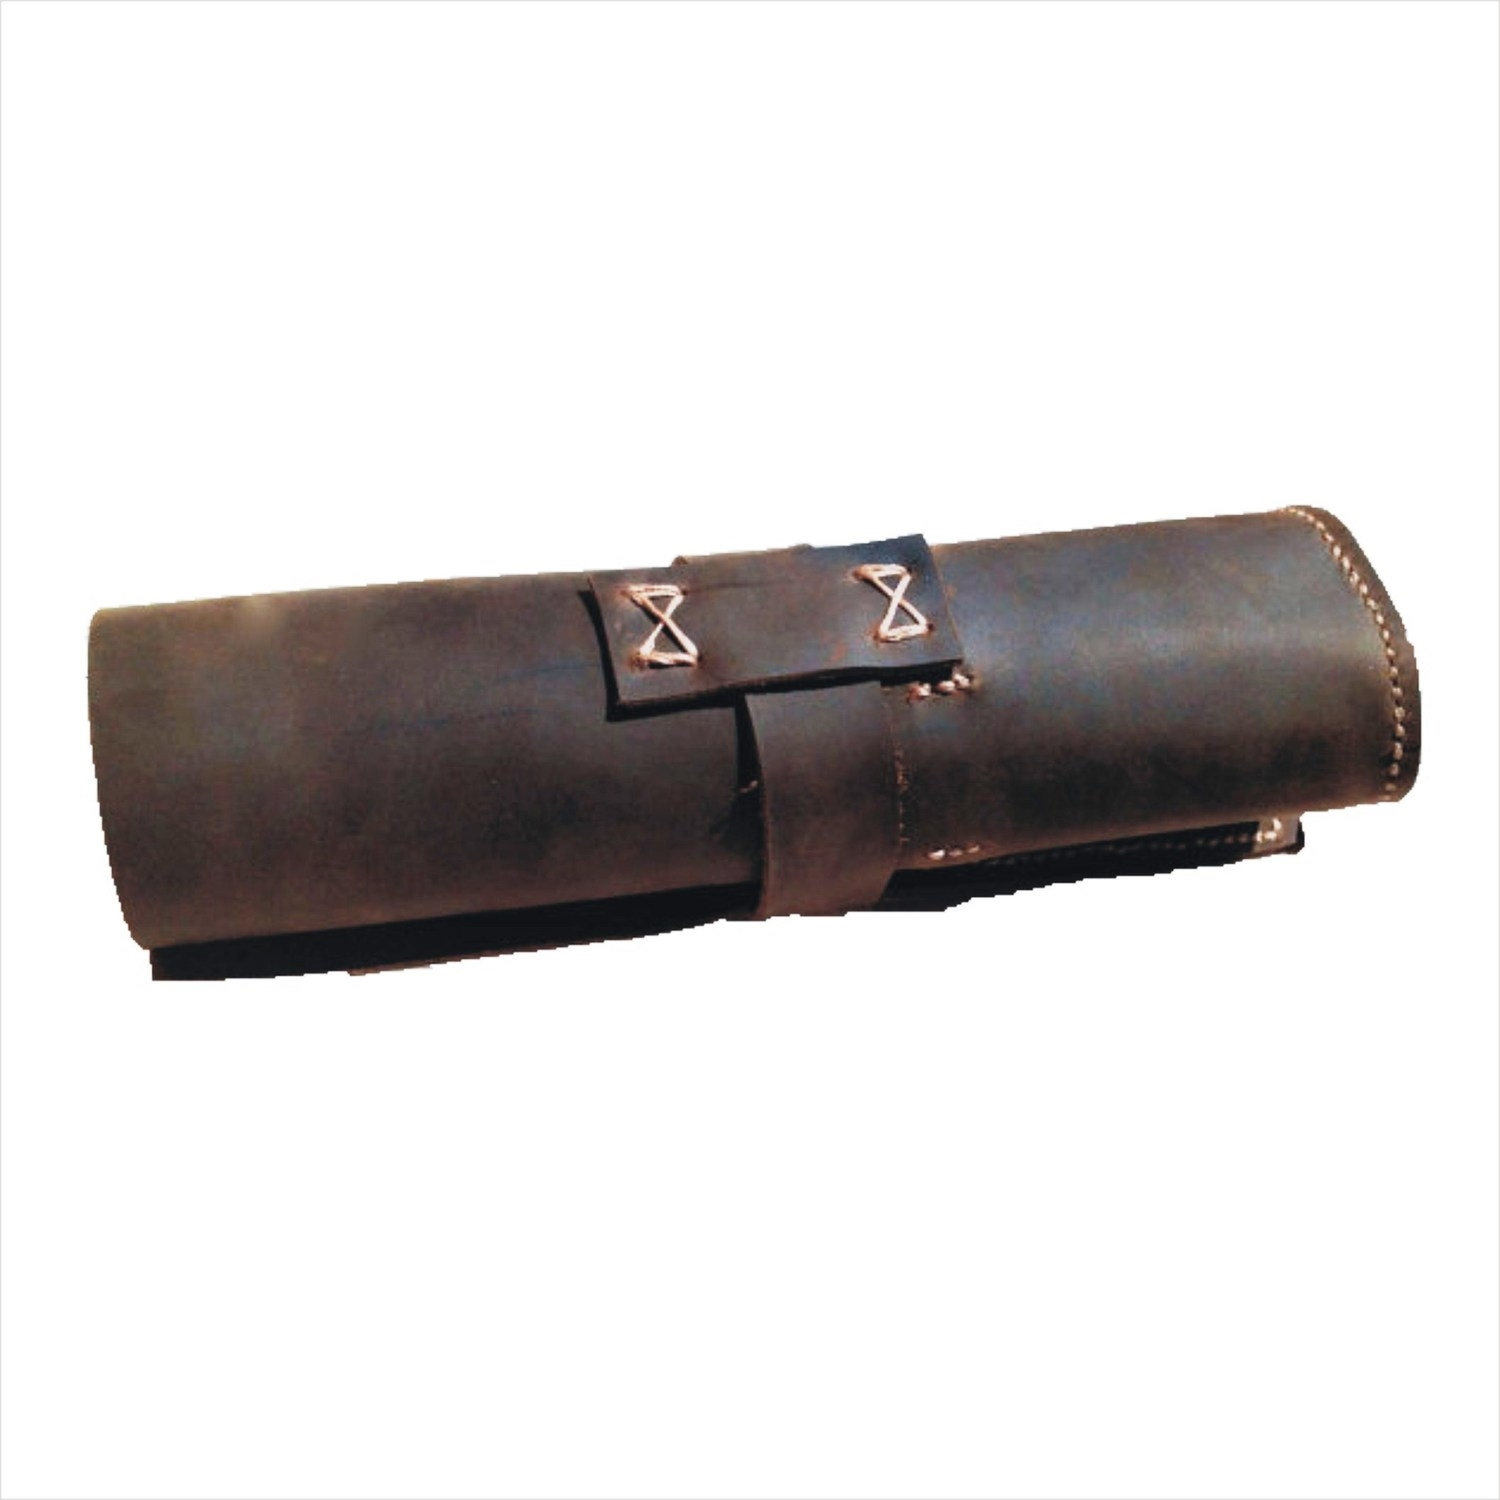 Leather Pencil Roll $60